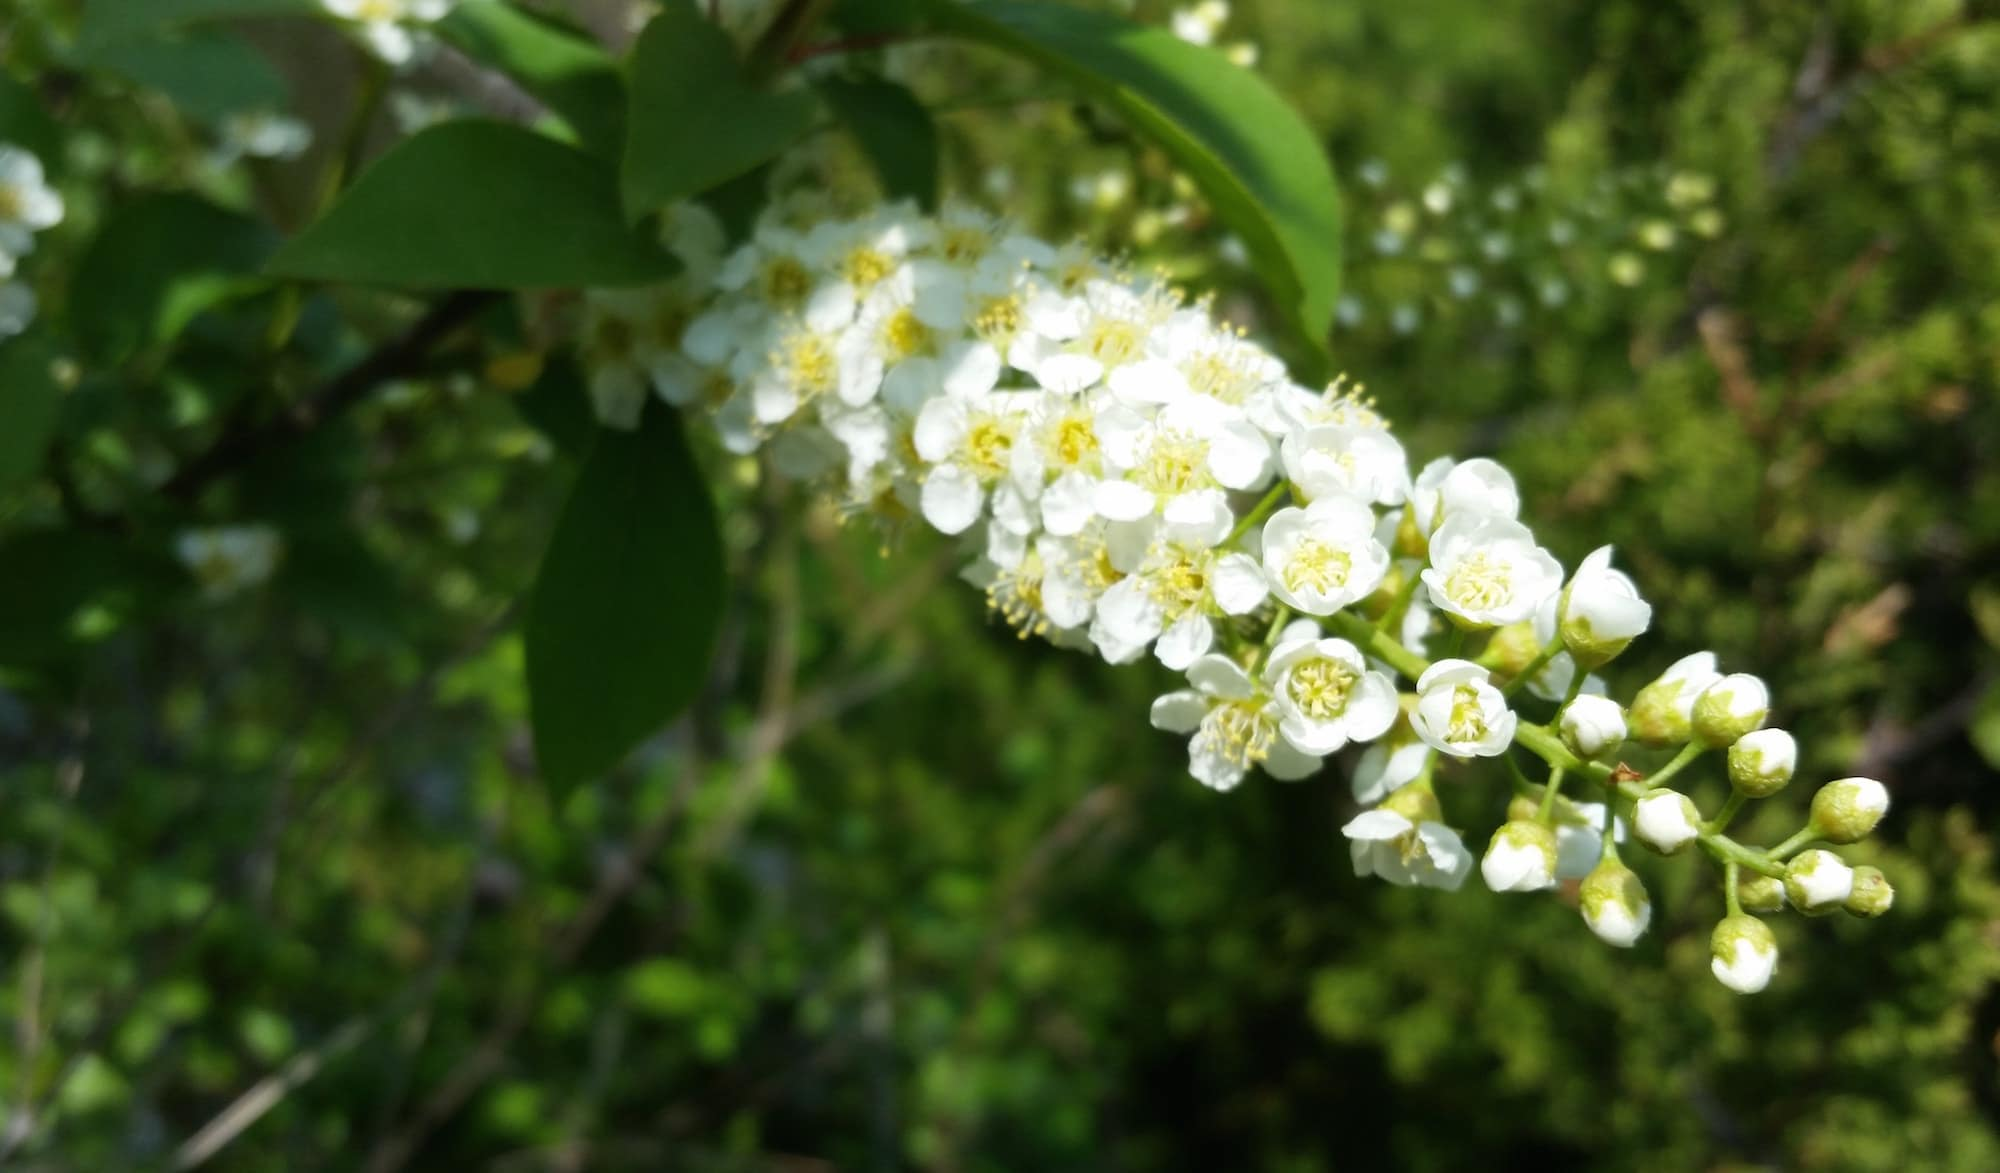 wild cherries with a raceme of white blossoms